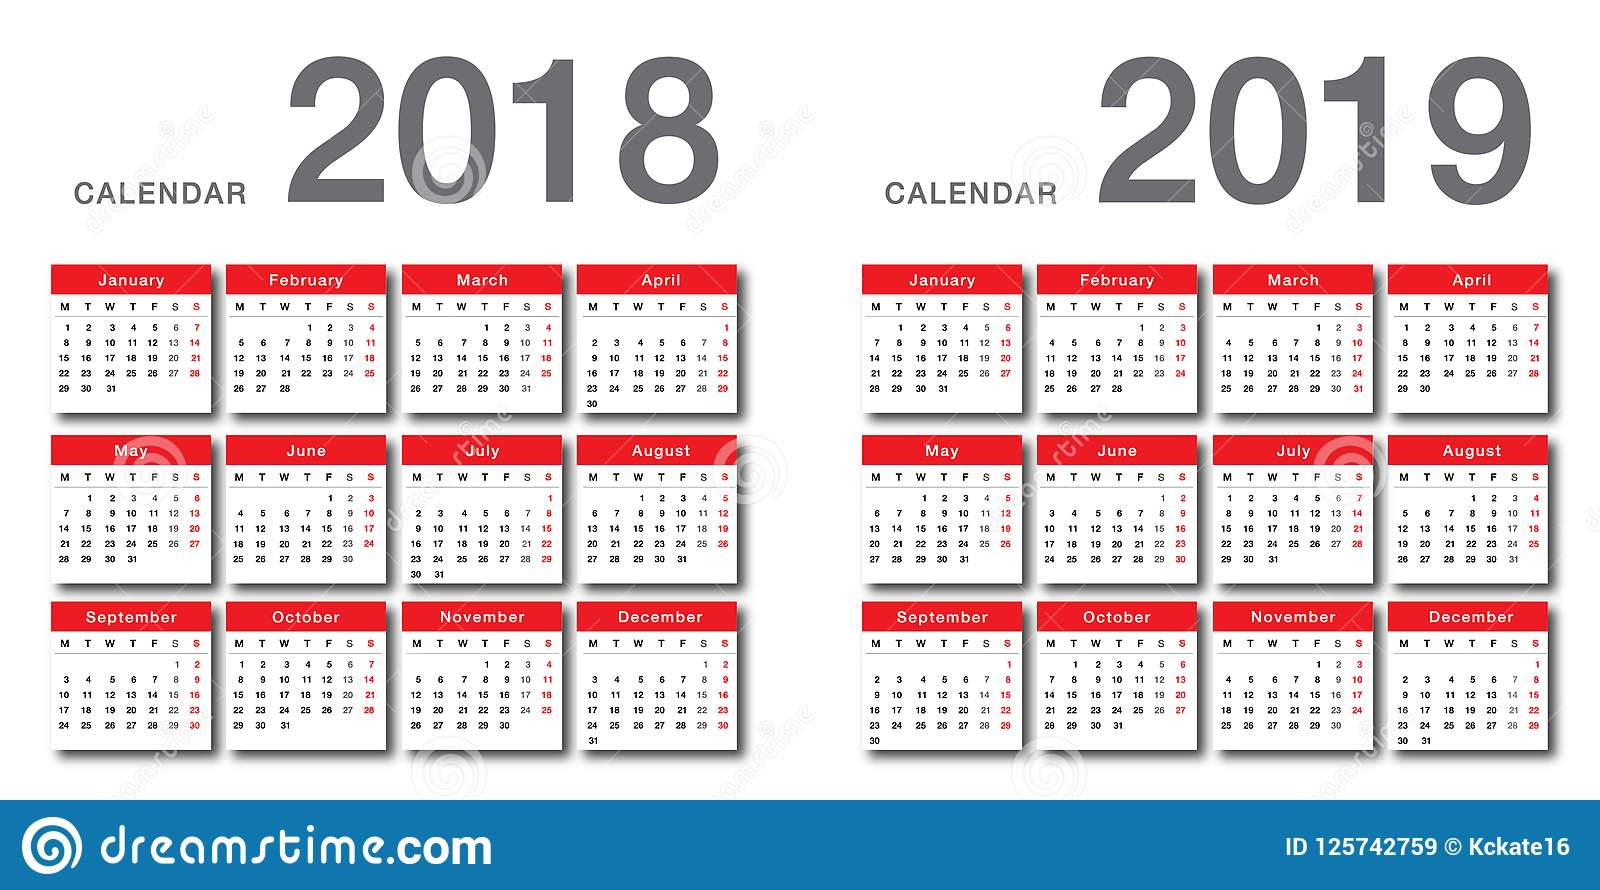 year 2018 and year 2019 calendar vector design template simple and clean design